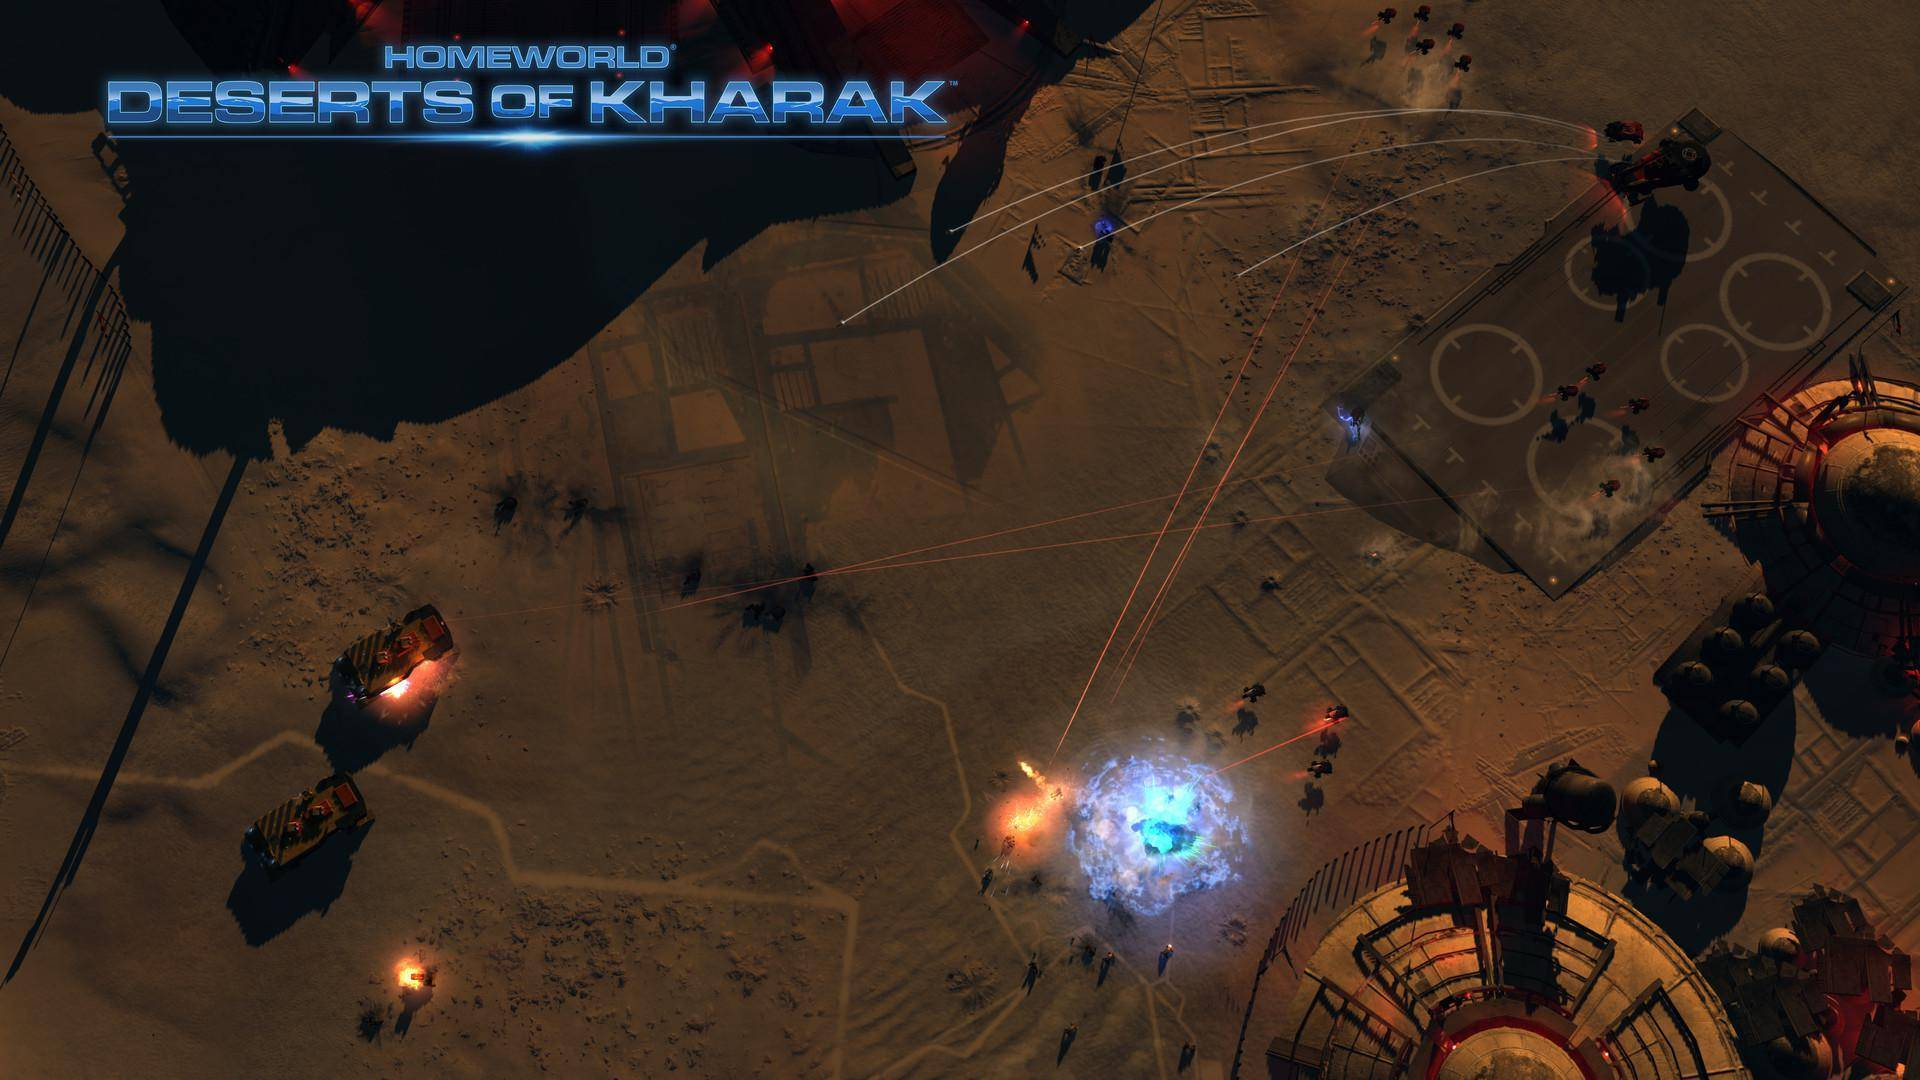 Article title about Homeworld Deserts of Kharak